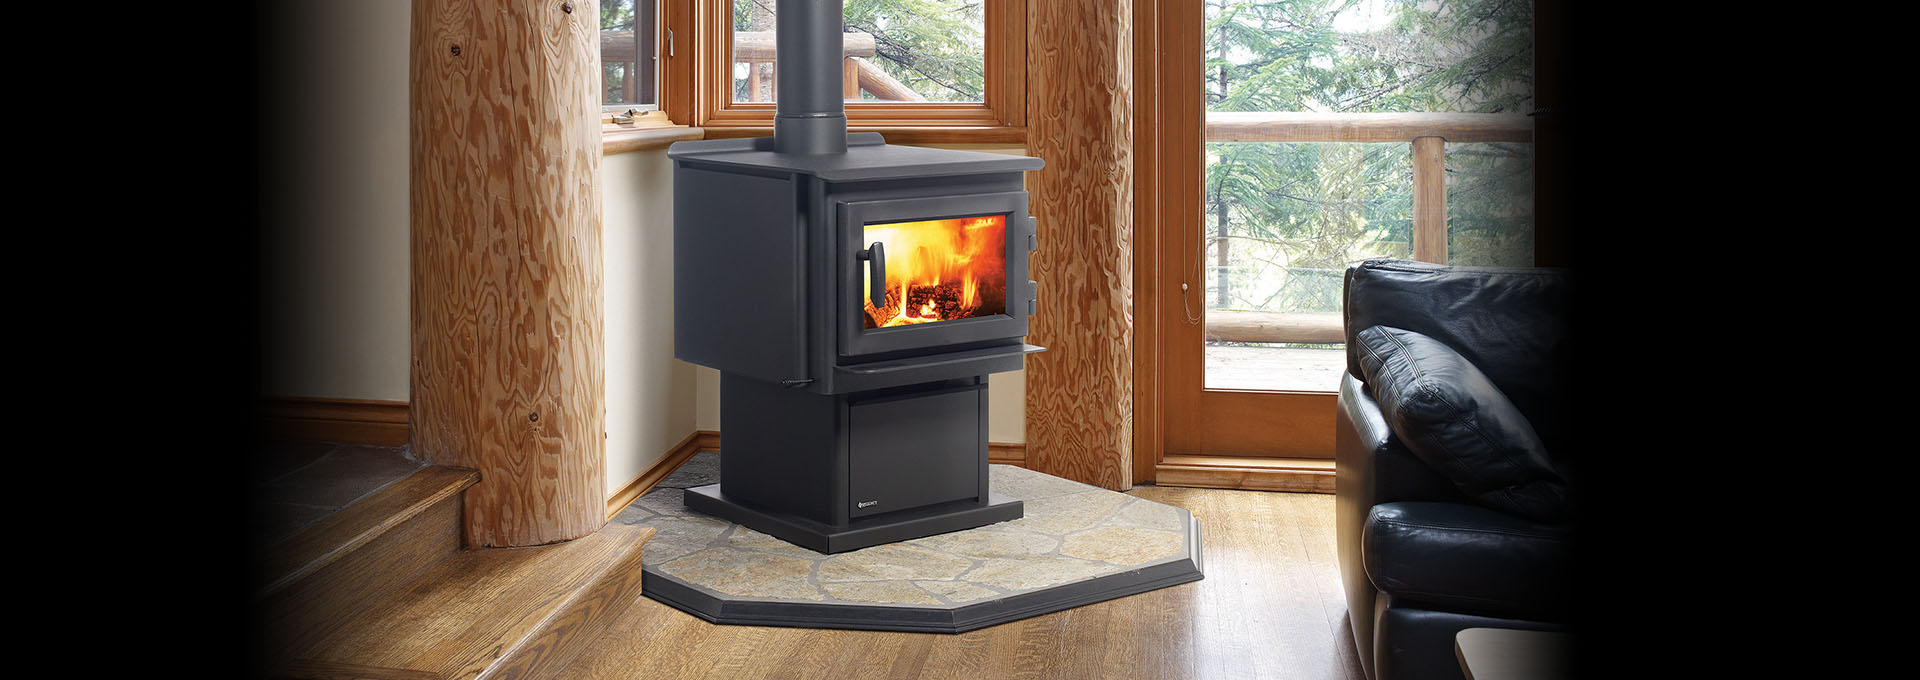 f3100 large wood stove regency fireplace products